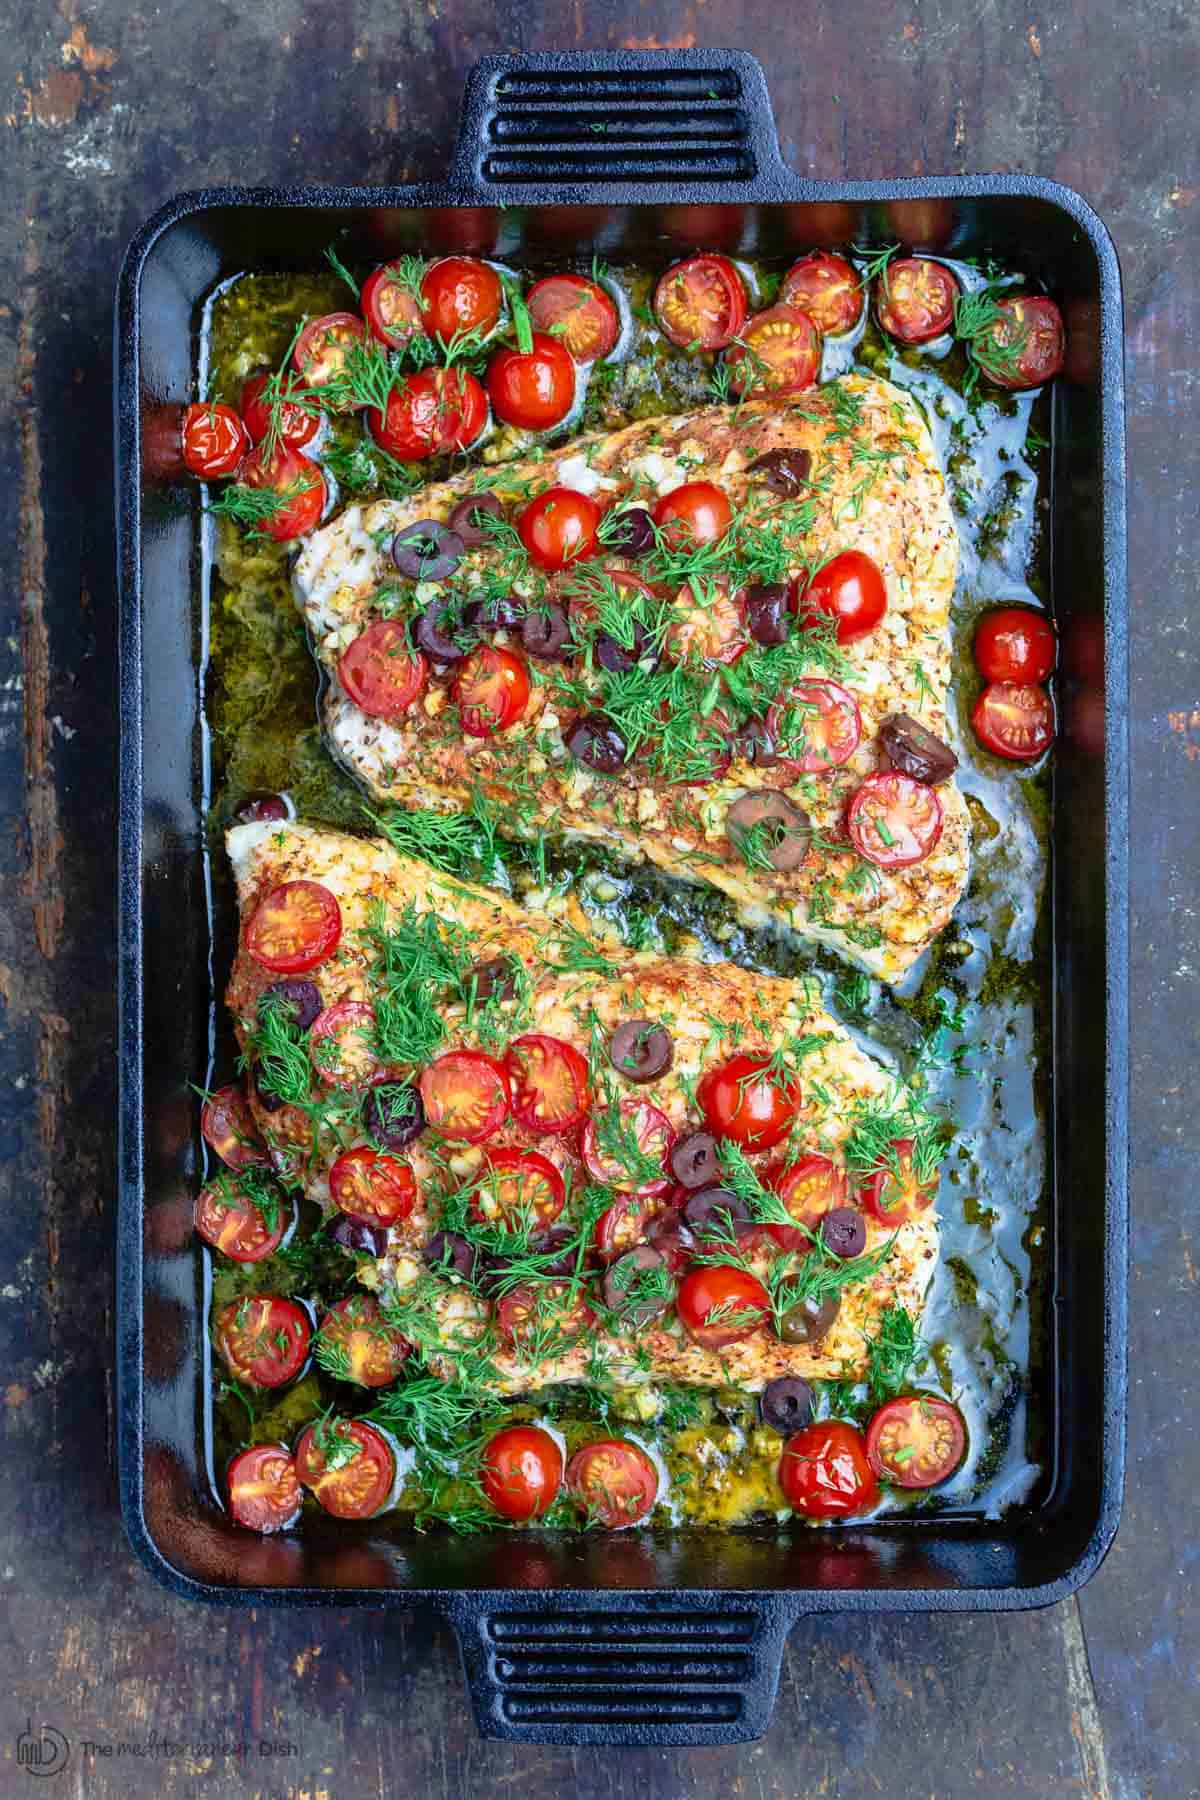 Baked grouper in black baking pan, topped with tomatoes, olives and fresh dill